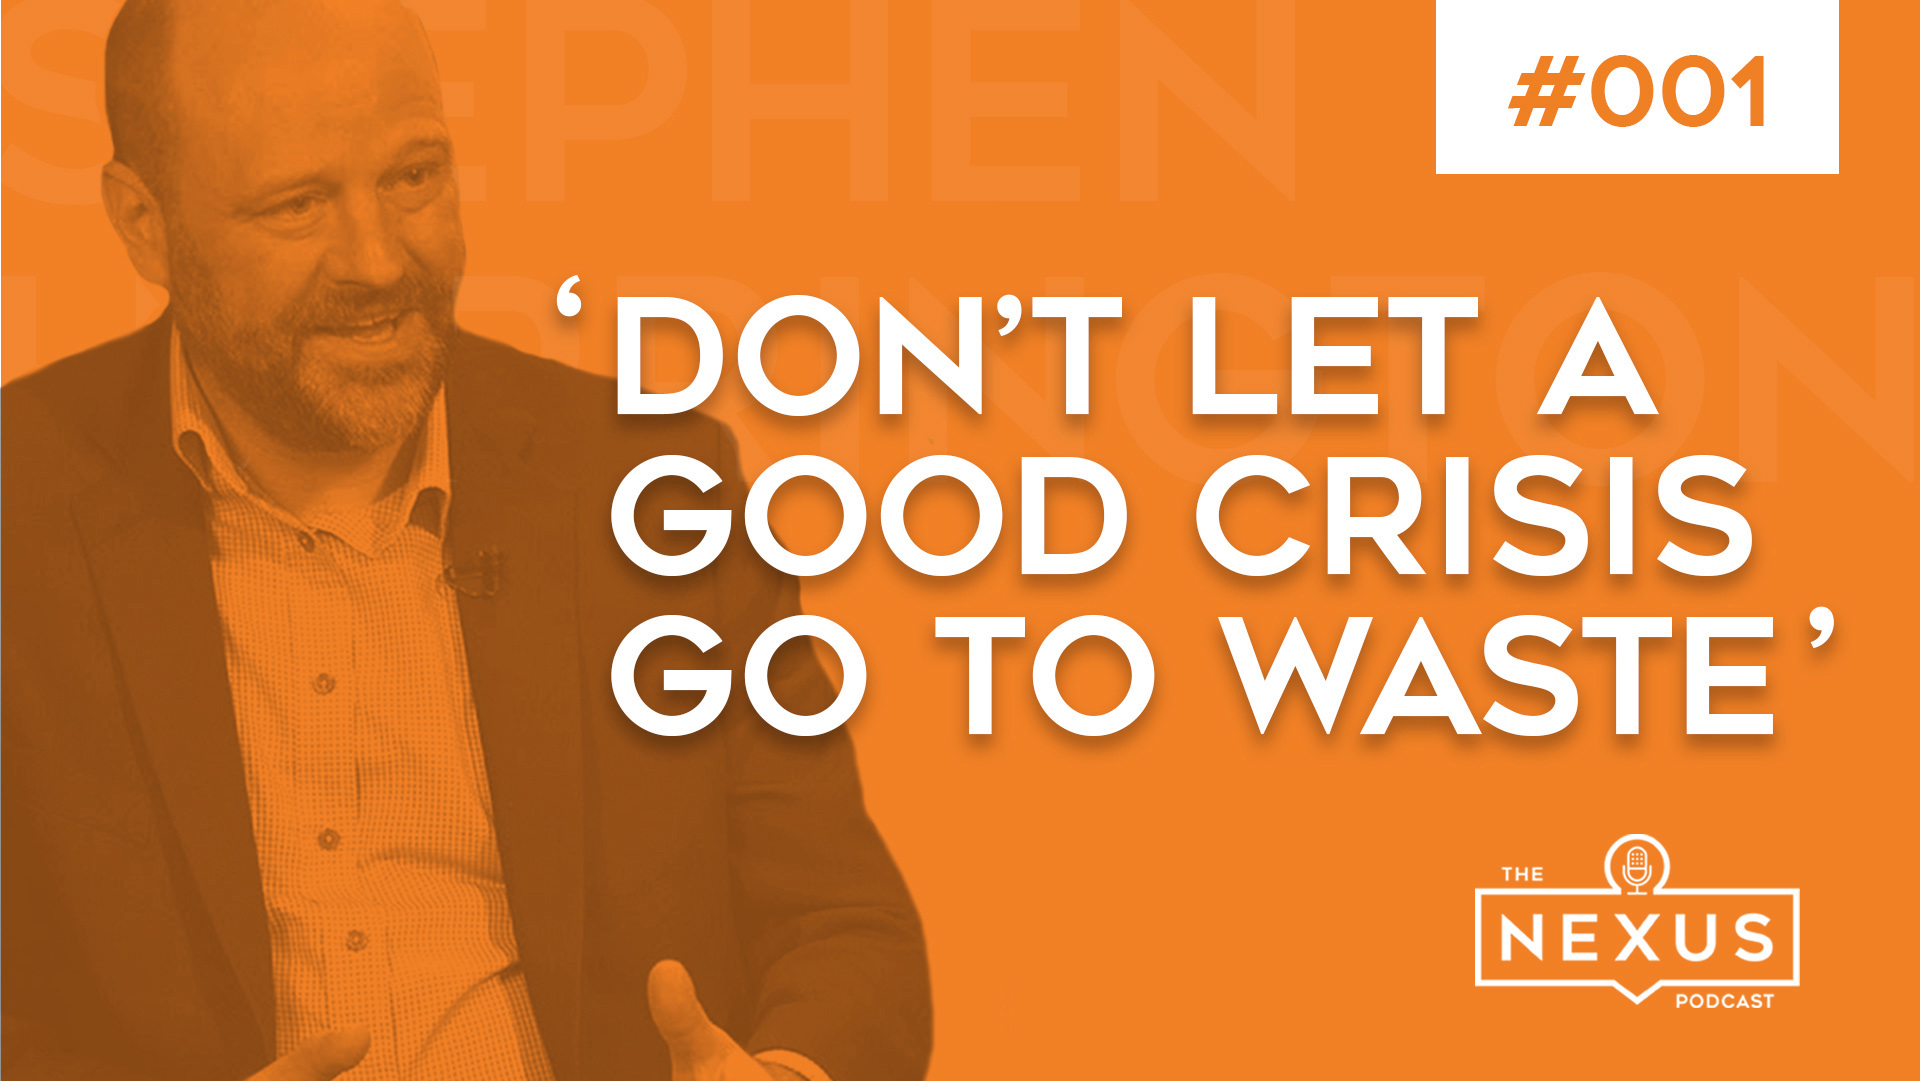 Don't Let A Good Crisis Go To Waste with Stephen Harrington